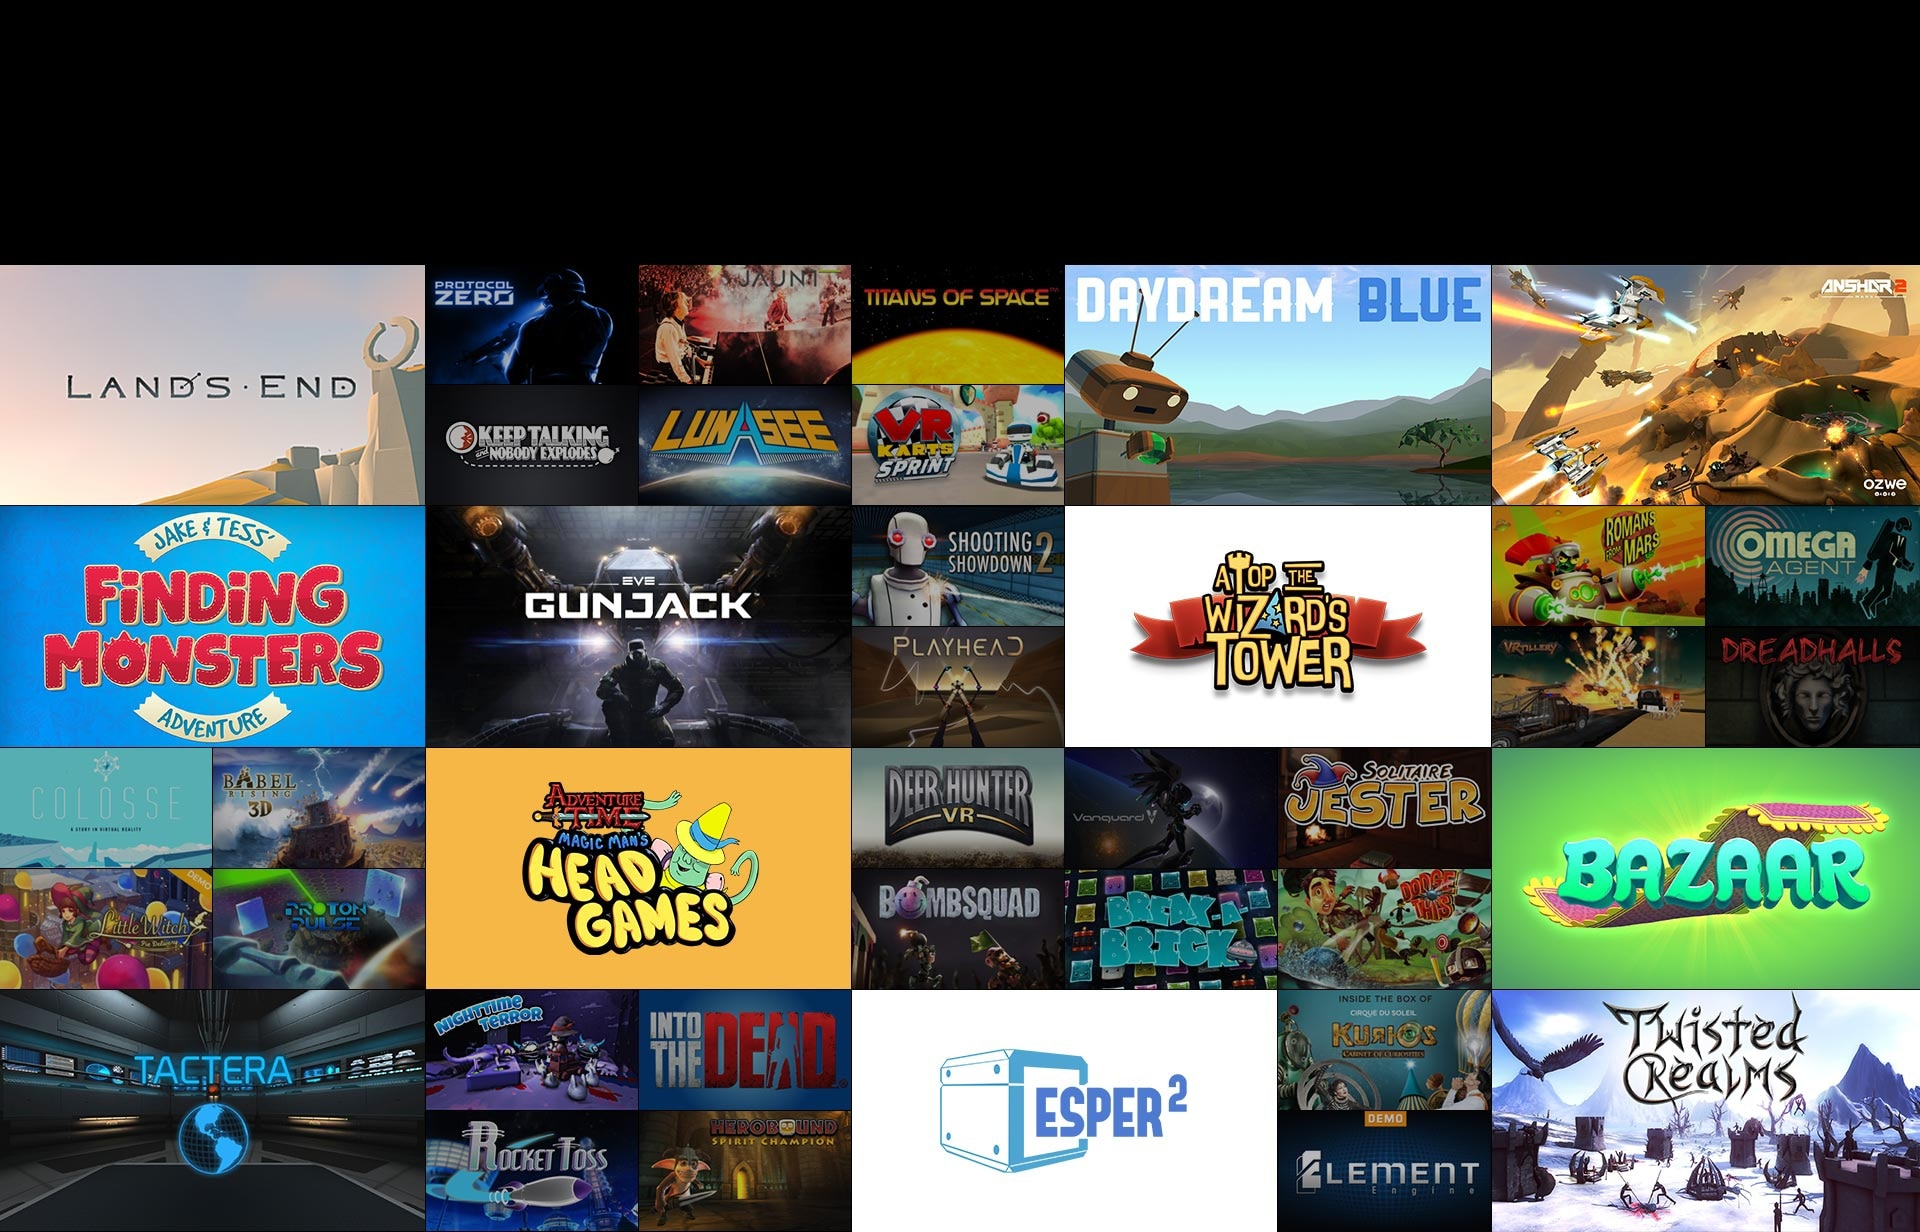 An image showing some of the games available for the Gear VR.